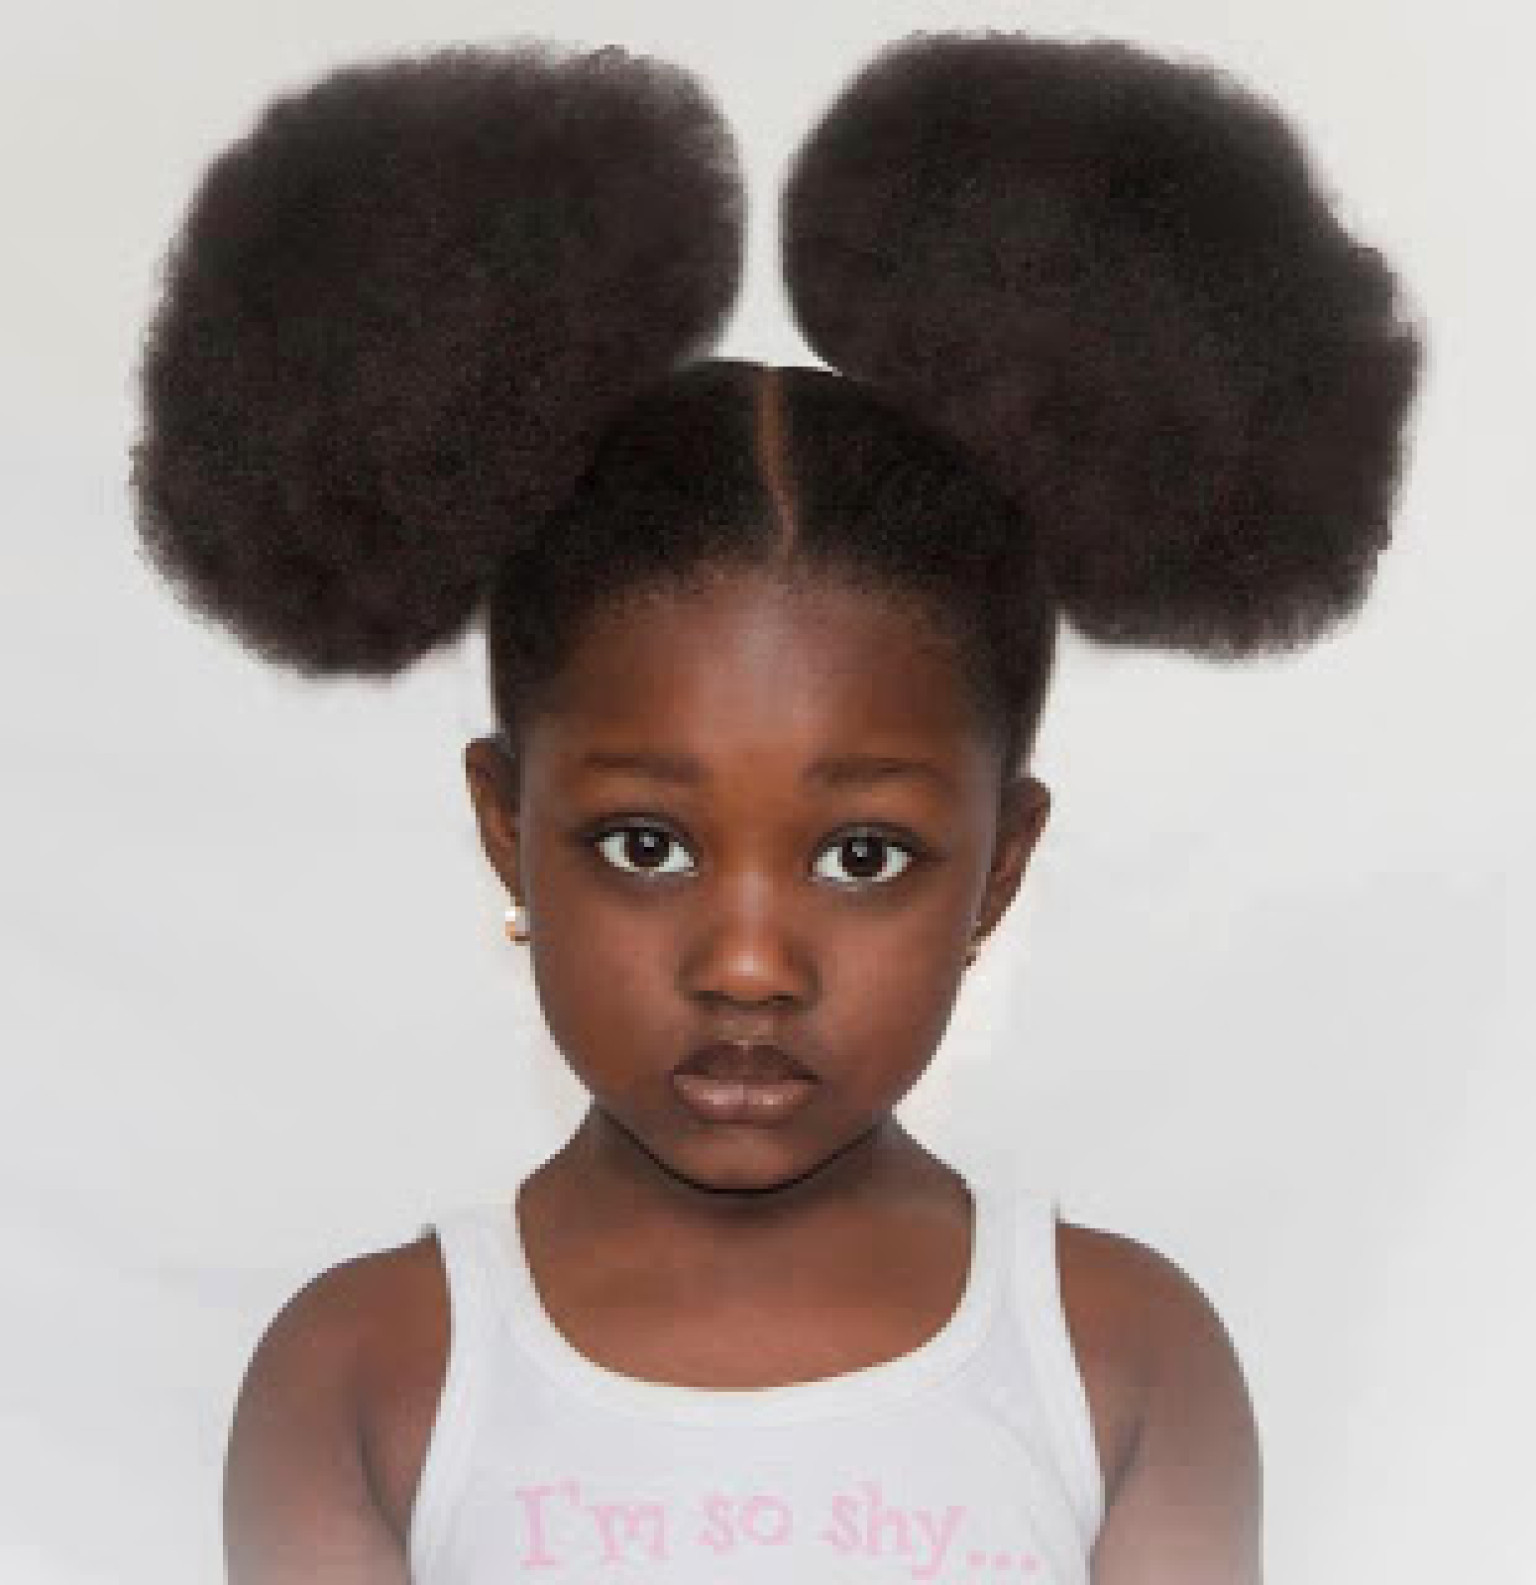 Ohio School Bans Afro Puffs And Braids (UPDATE) | HuffPost